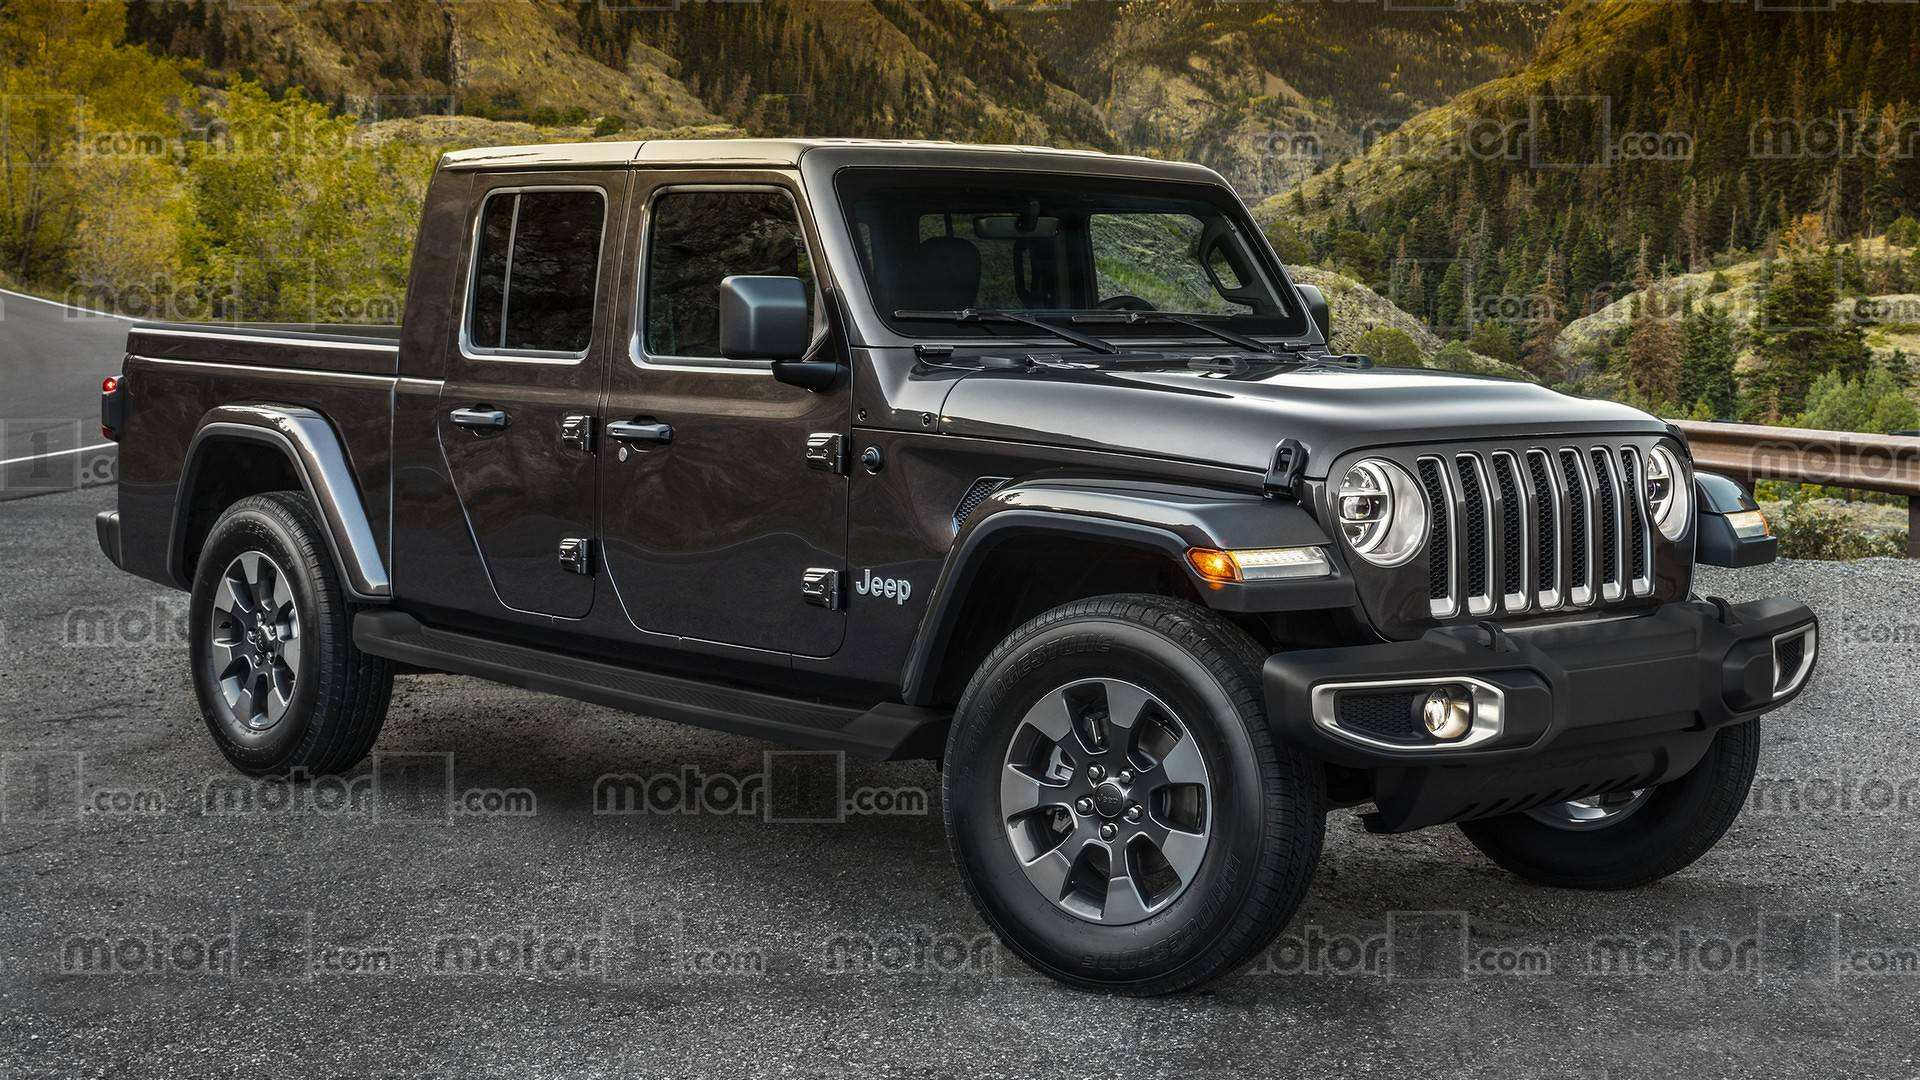 28 Gallery of 2019 Jeep Pickup Diesel Redesign for 2019 Jeep Pickup Diesel